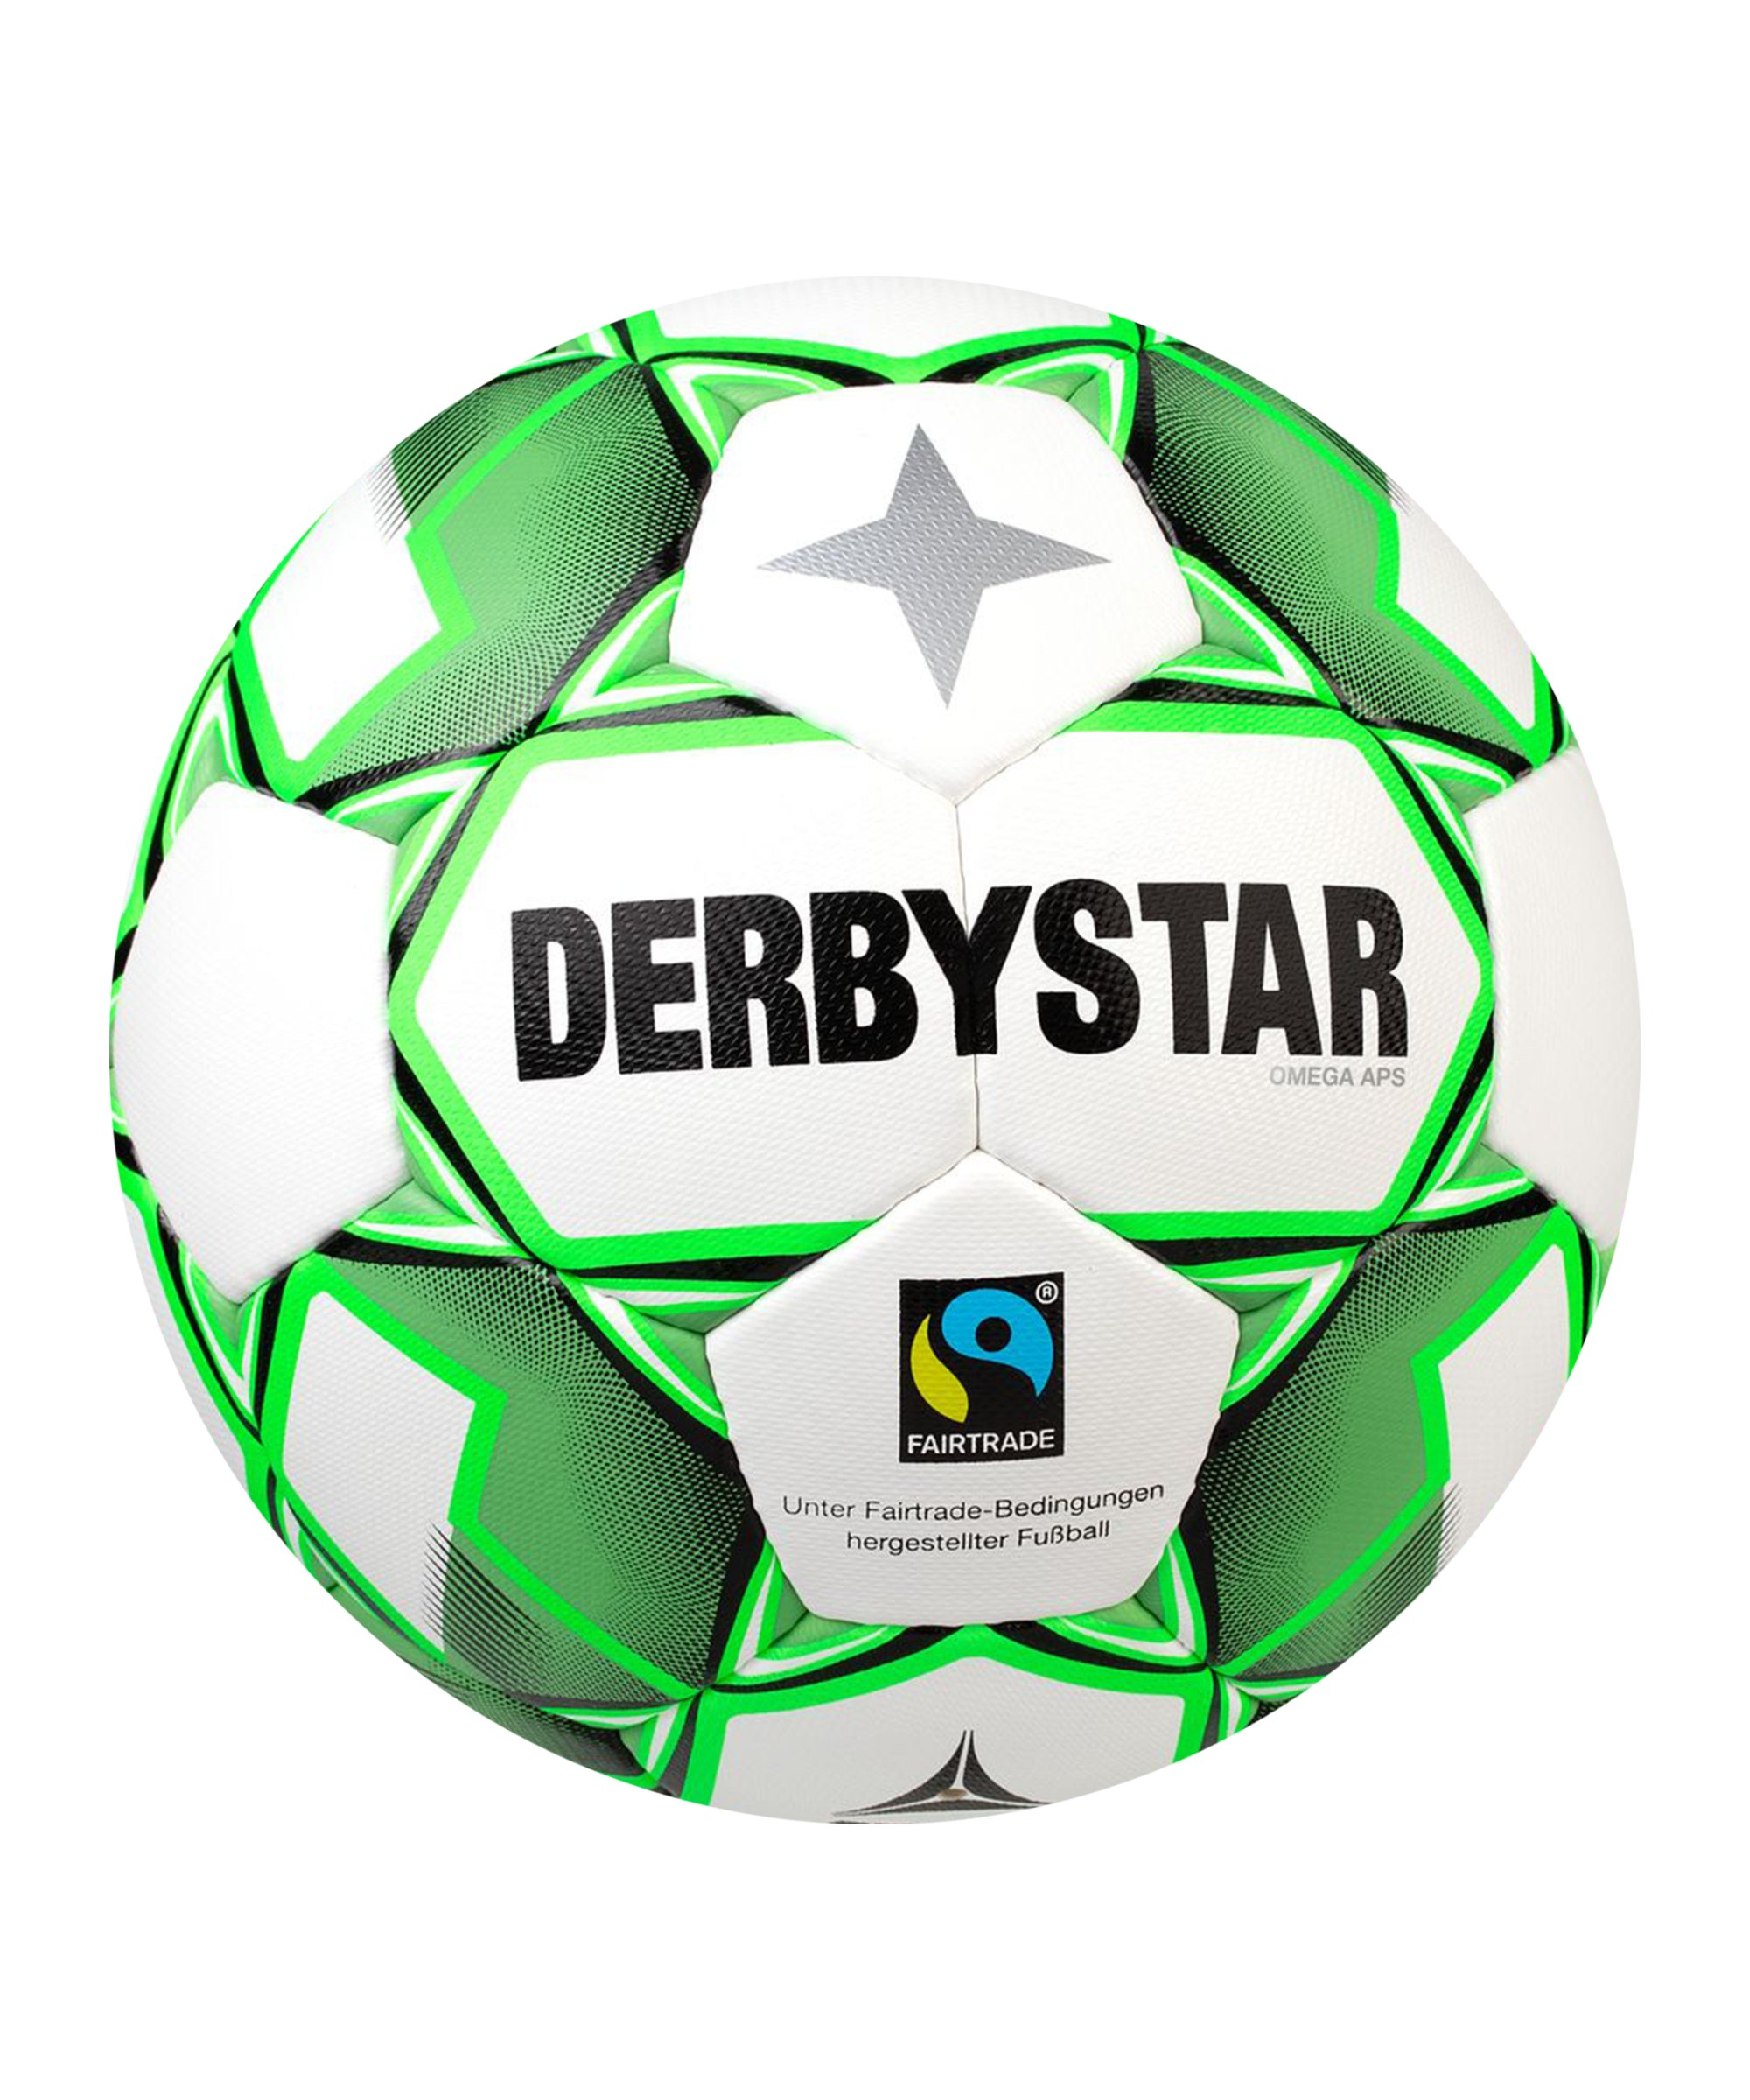 Derbystar Omega APS V20 Trainingsball Weiss F140 - weiss